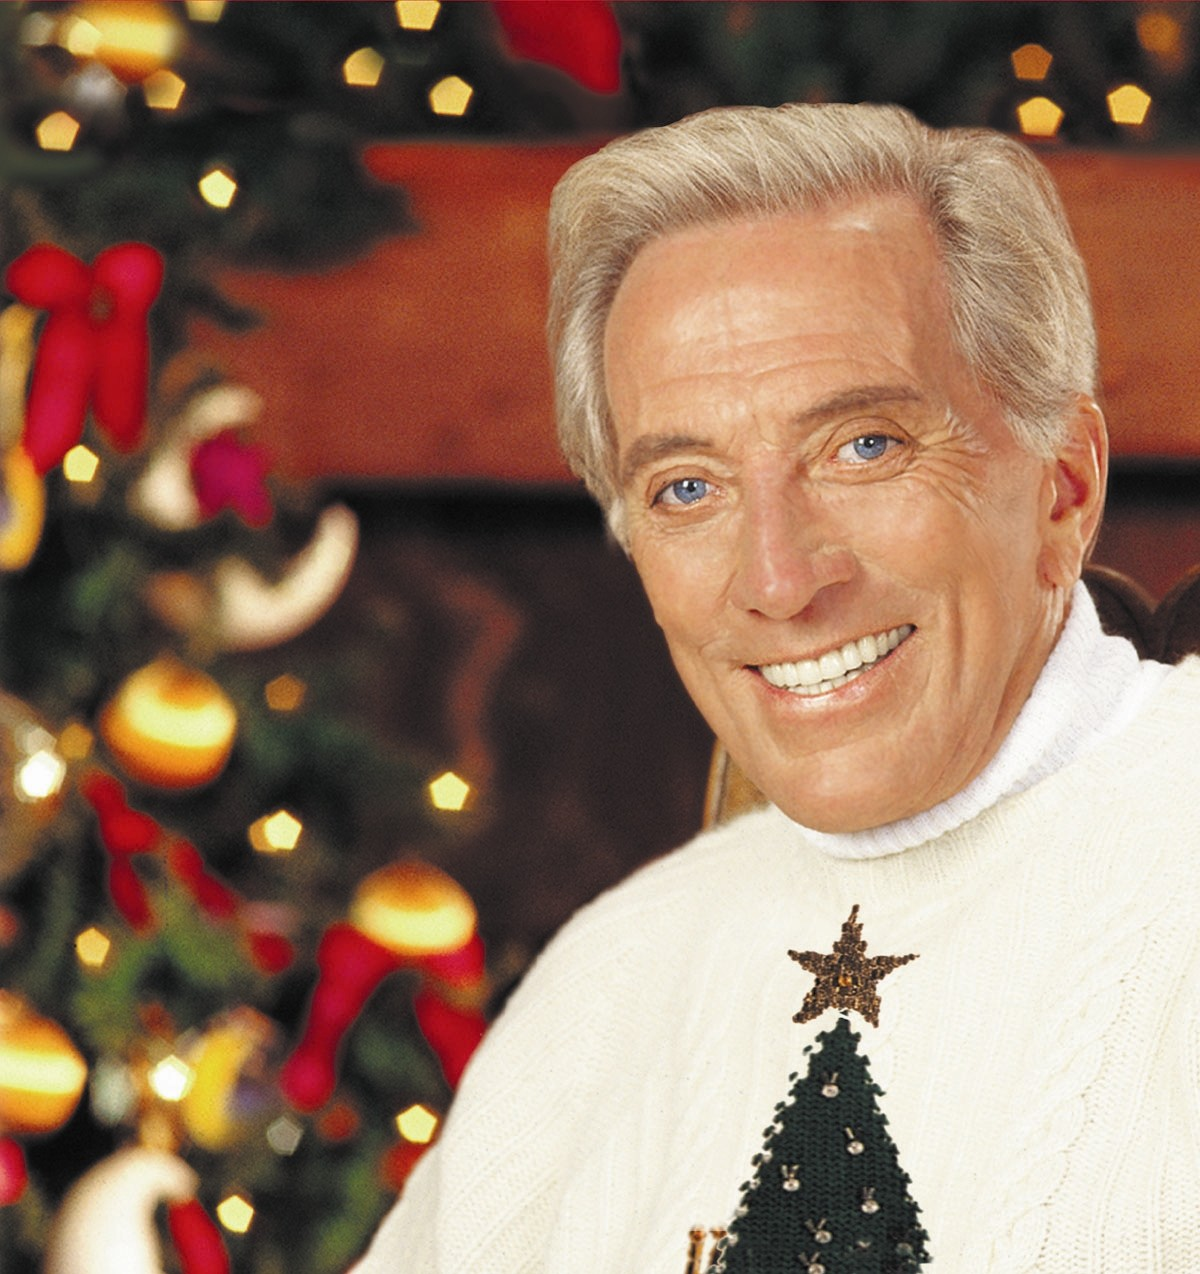 http://2.bp.blogspot.com/-cm7fQWuUopQ/UGNeWdBY5bI/AAAAAAAAFqg/Il4hXe9NR3U/s1600/andy_williams_at_christmas.jpg